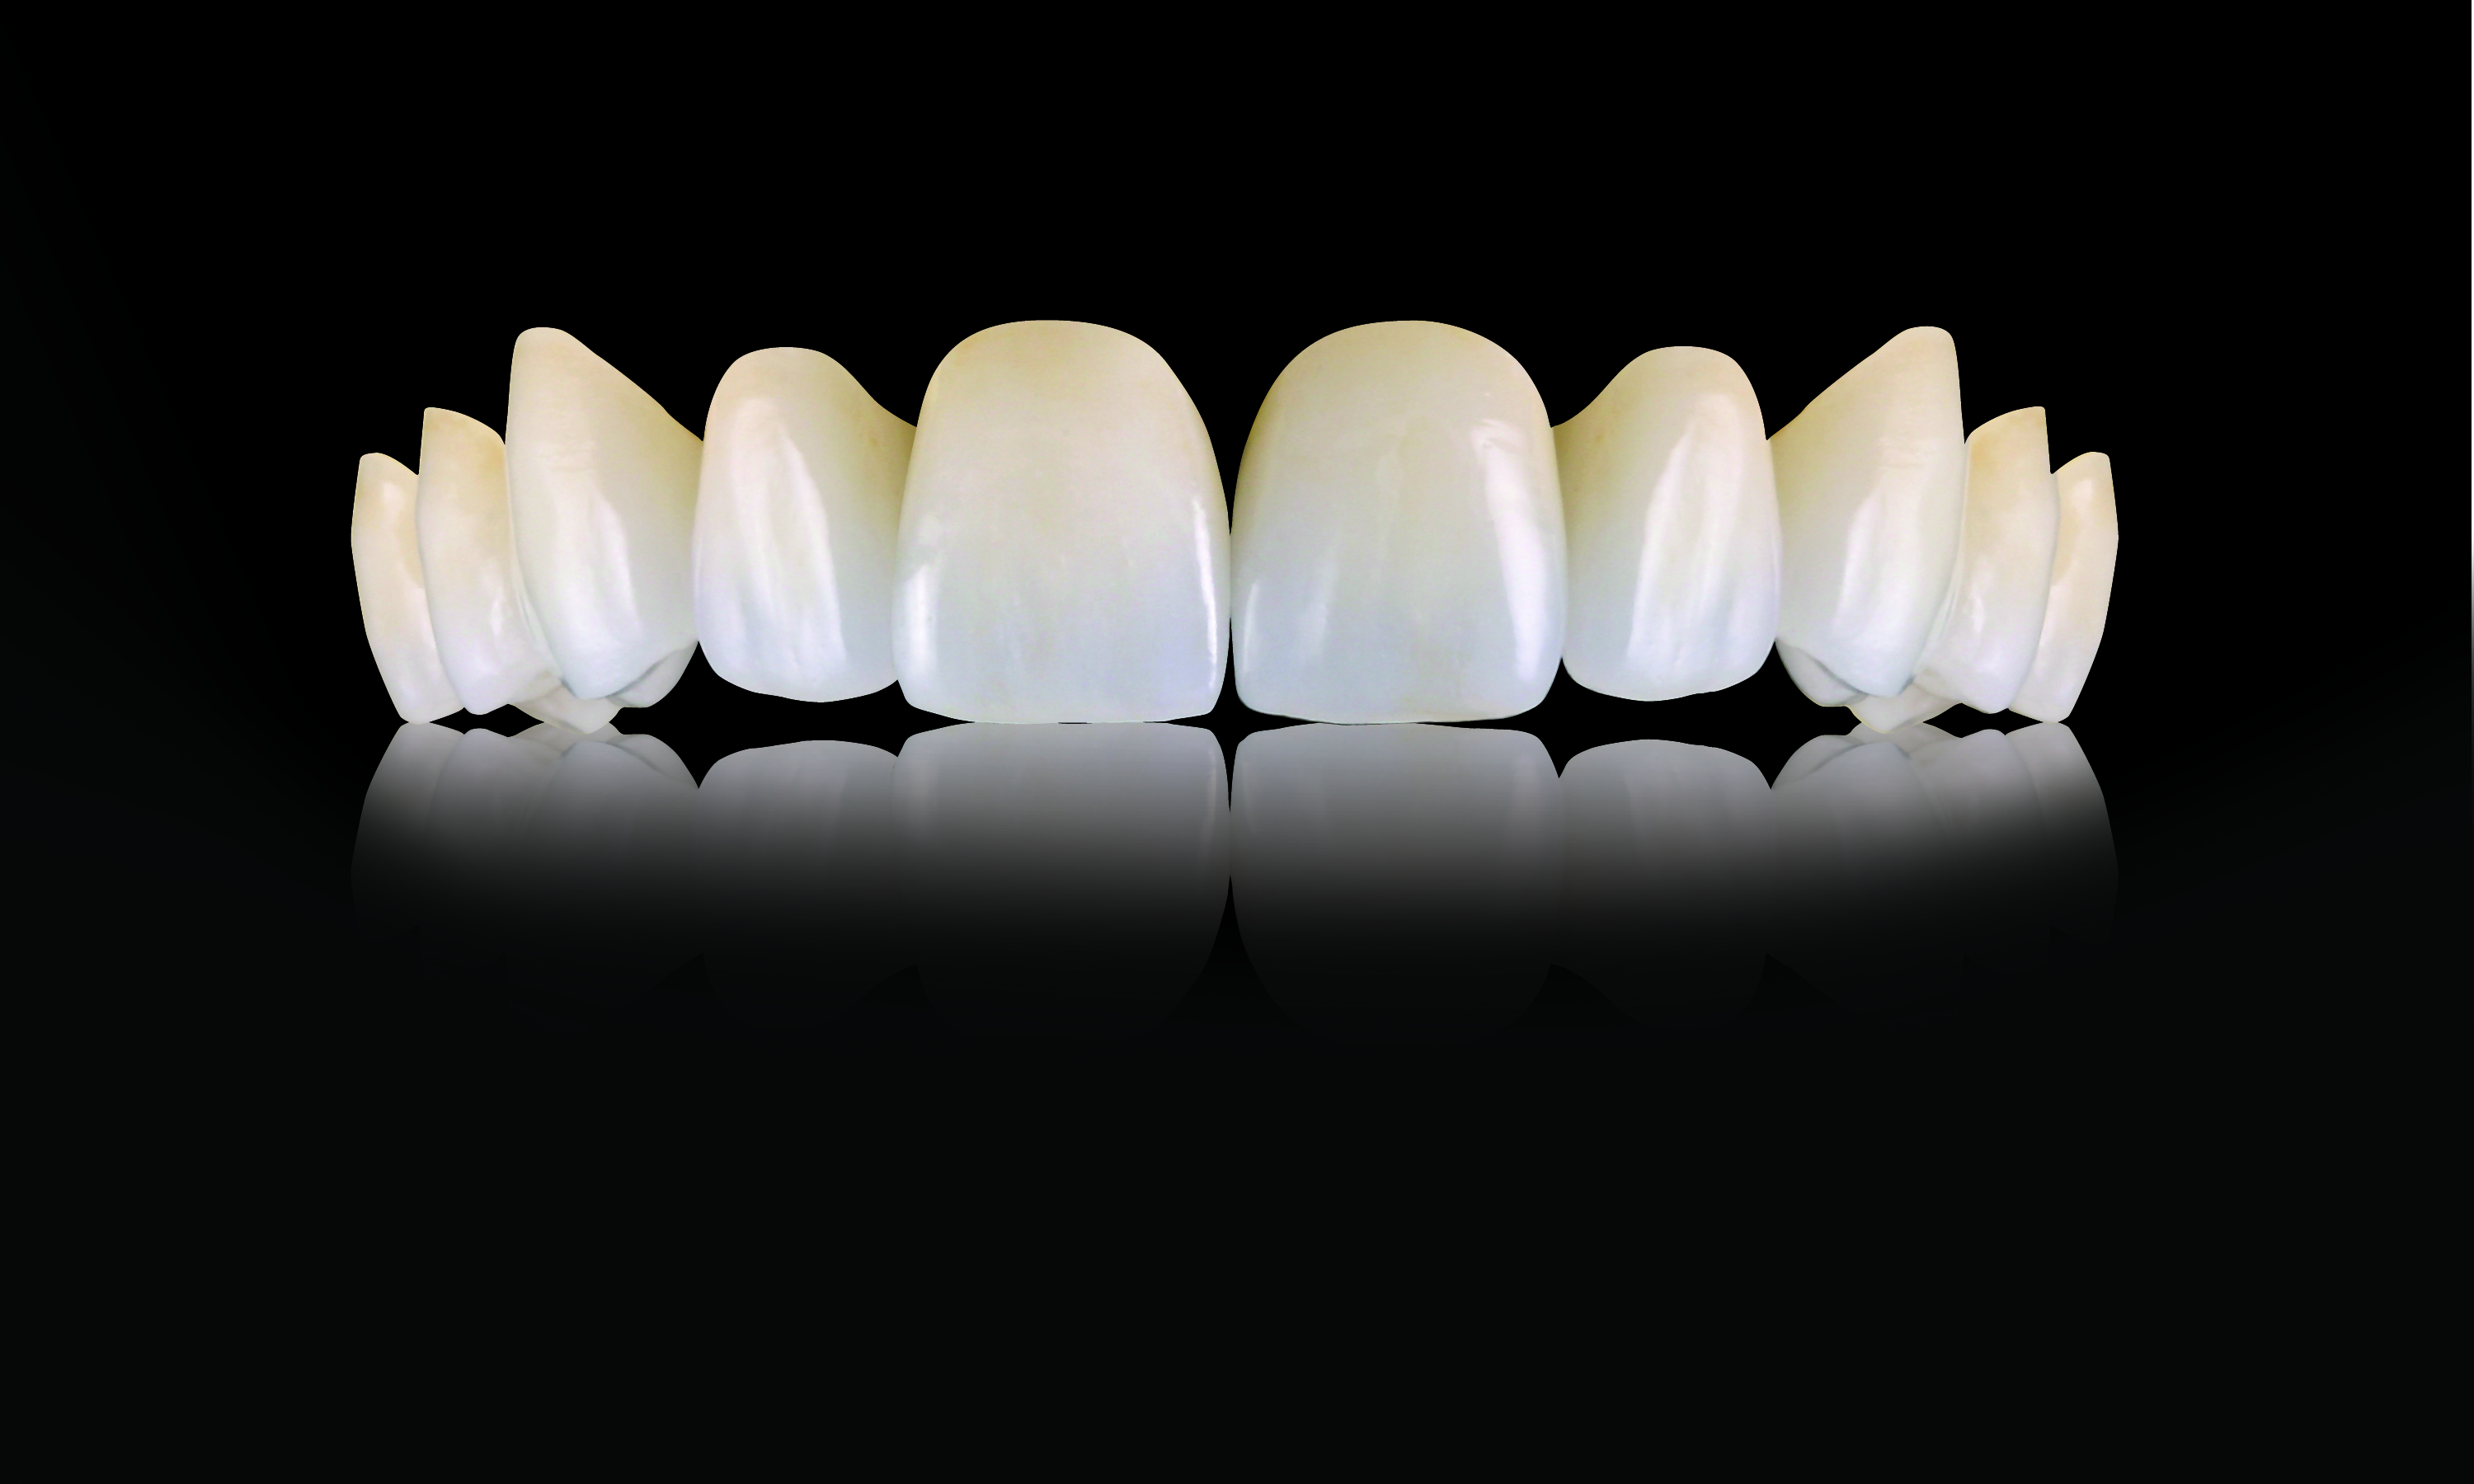 Oral Arts Dental Laboratories - IPS e.max Crowns